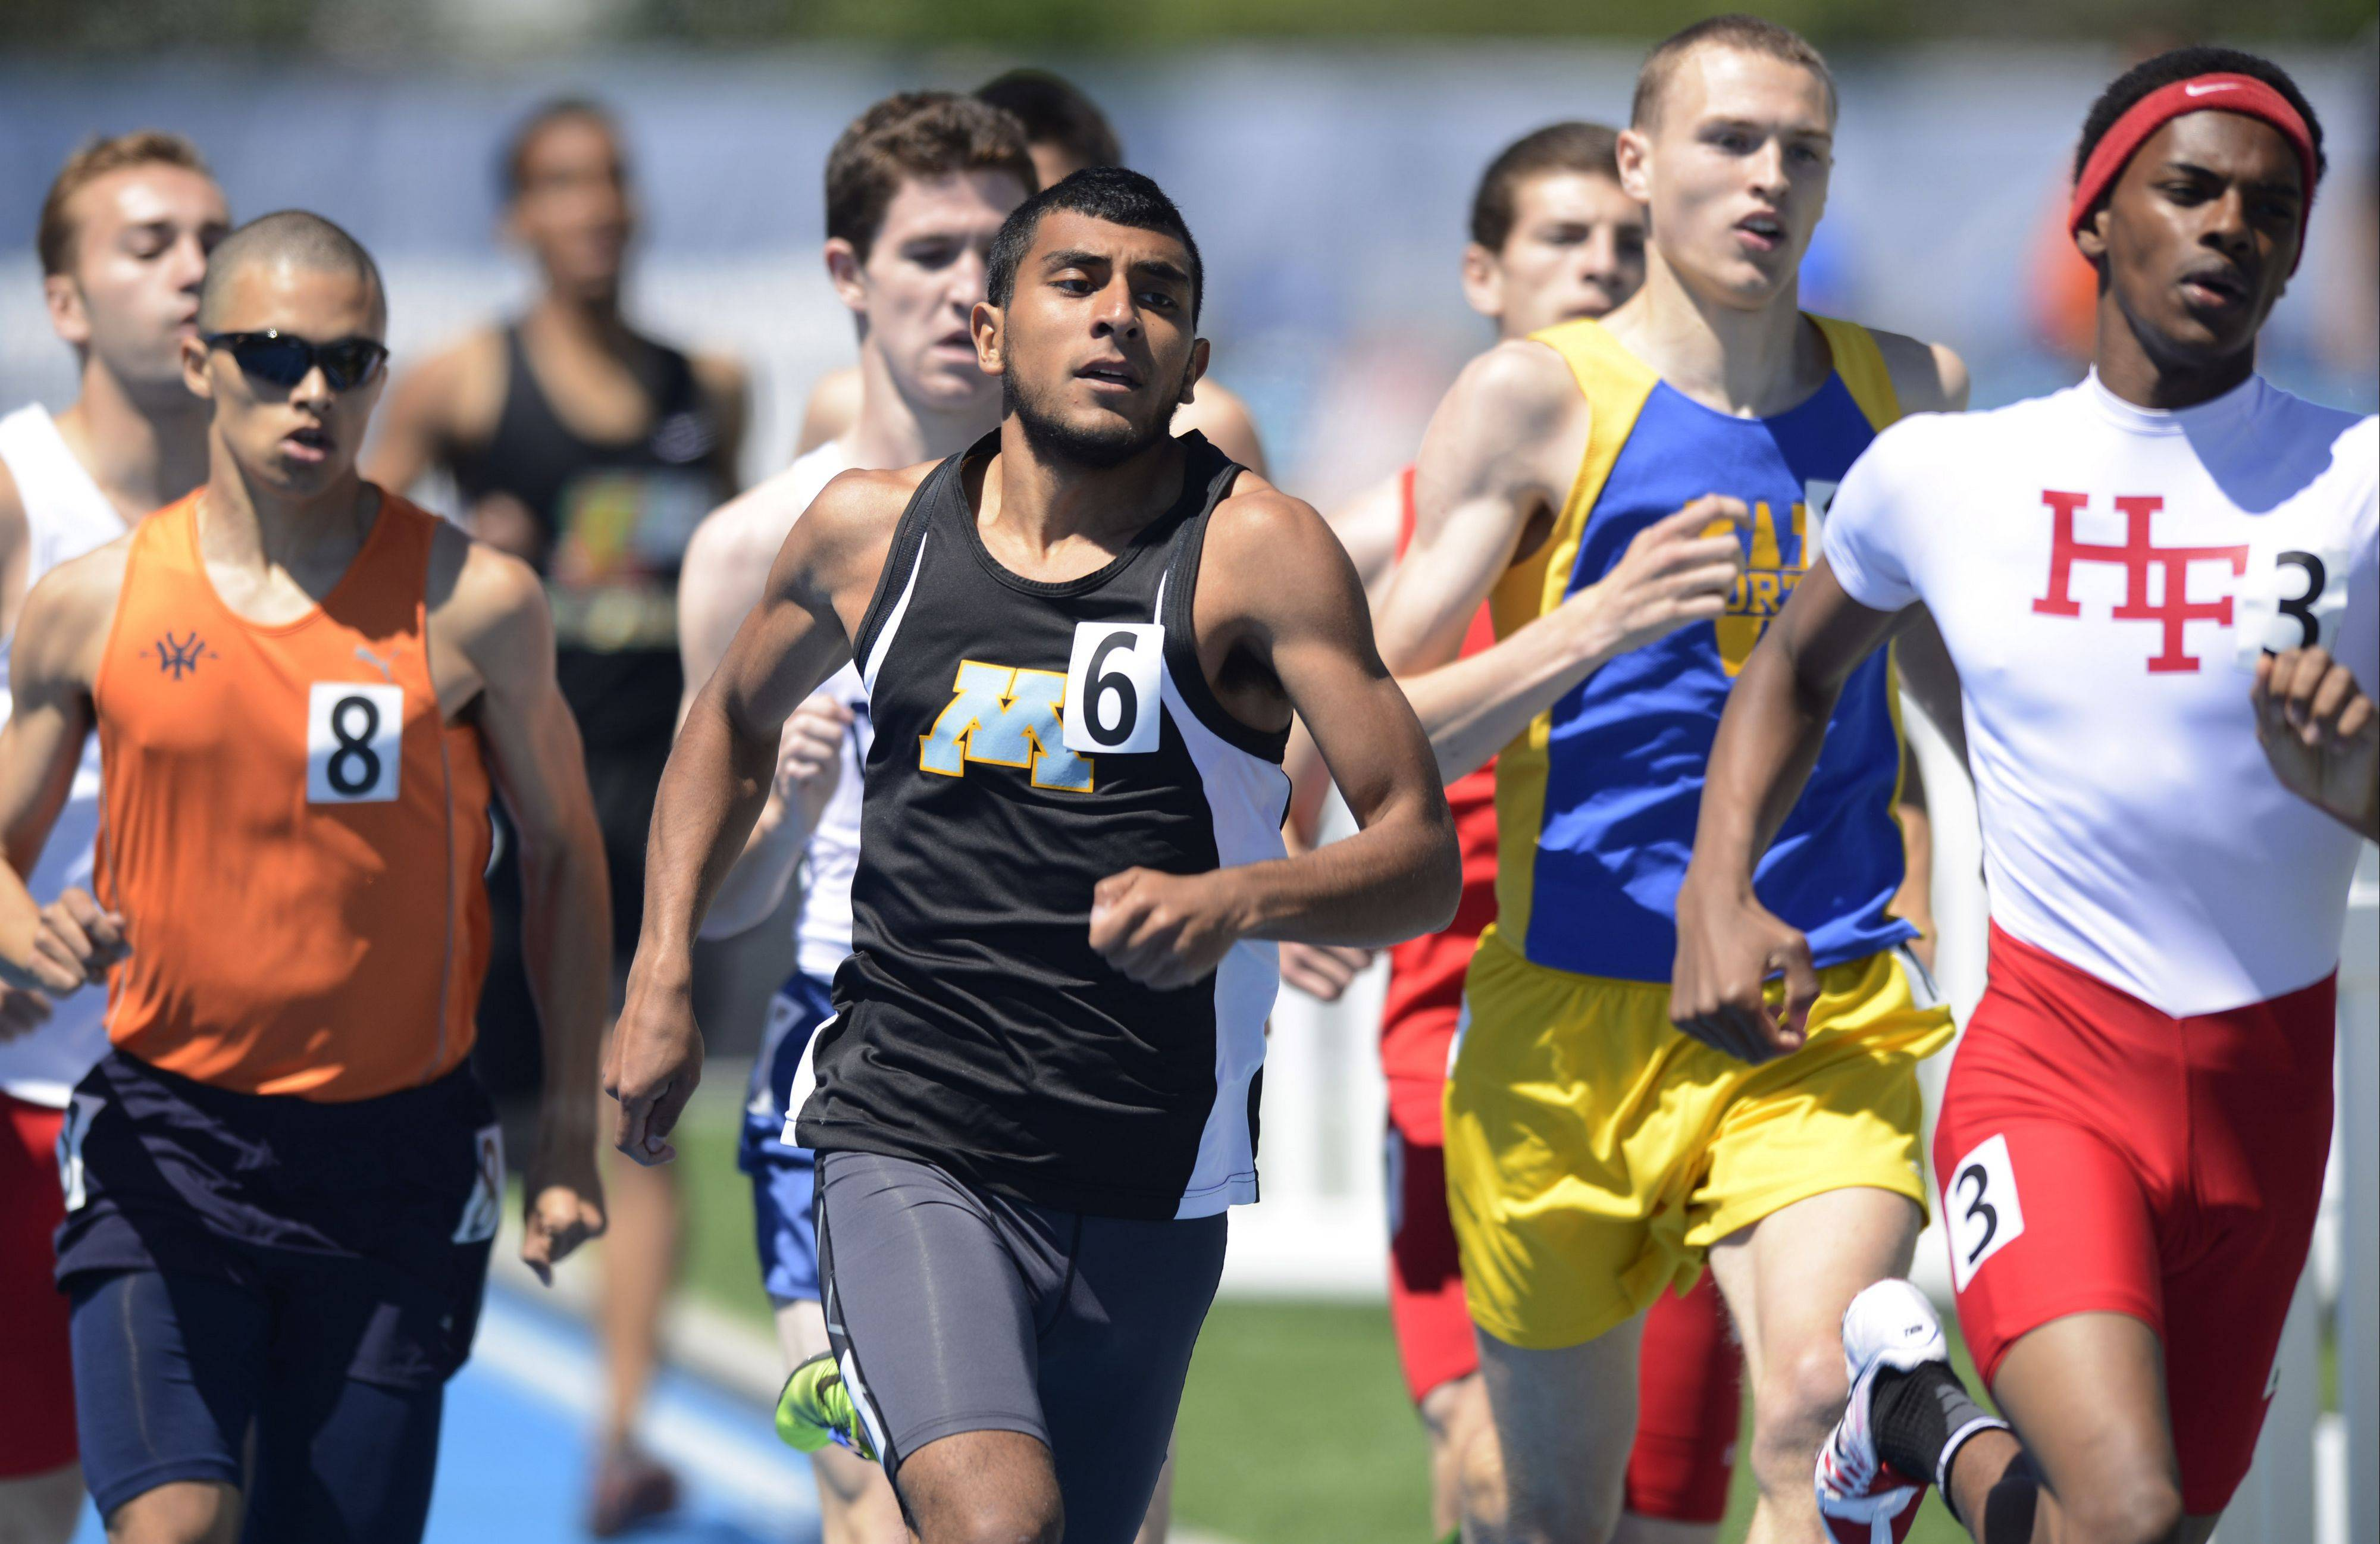 Maine West's Alex Gasca, middle, competes in the Class 3A 800-meter run during the boys track state meet preliminaries in Charleston on Friday.